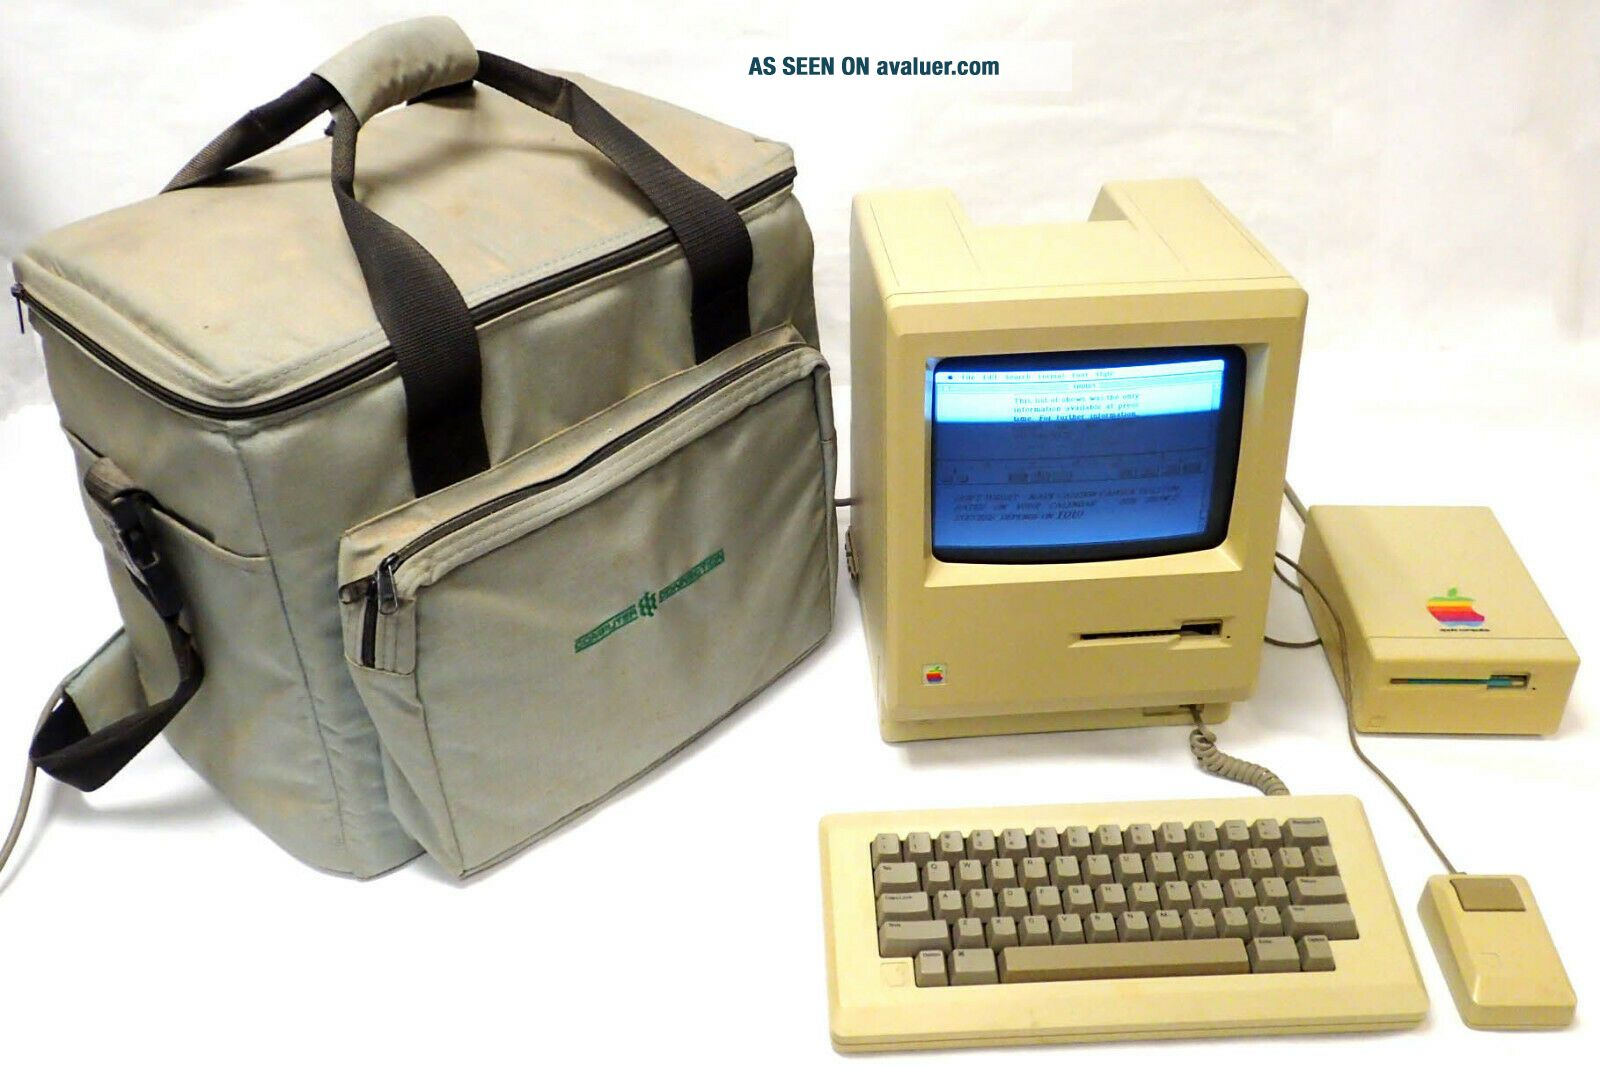 1984 APPLE MACINTOSH M0001 COMPUTER 128K w KEYBOARD MOUSE DISK DRIVE,